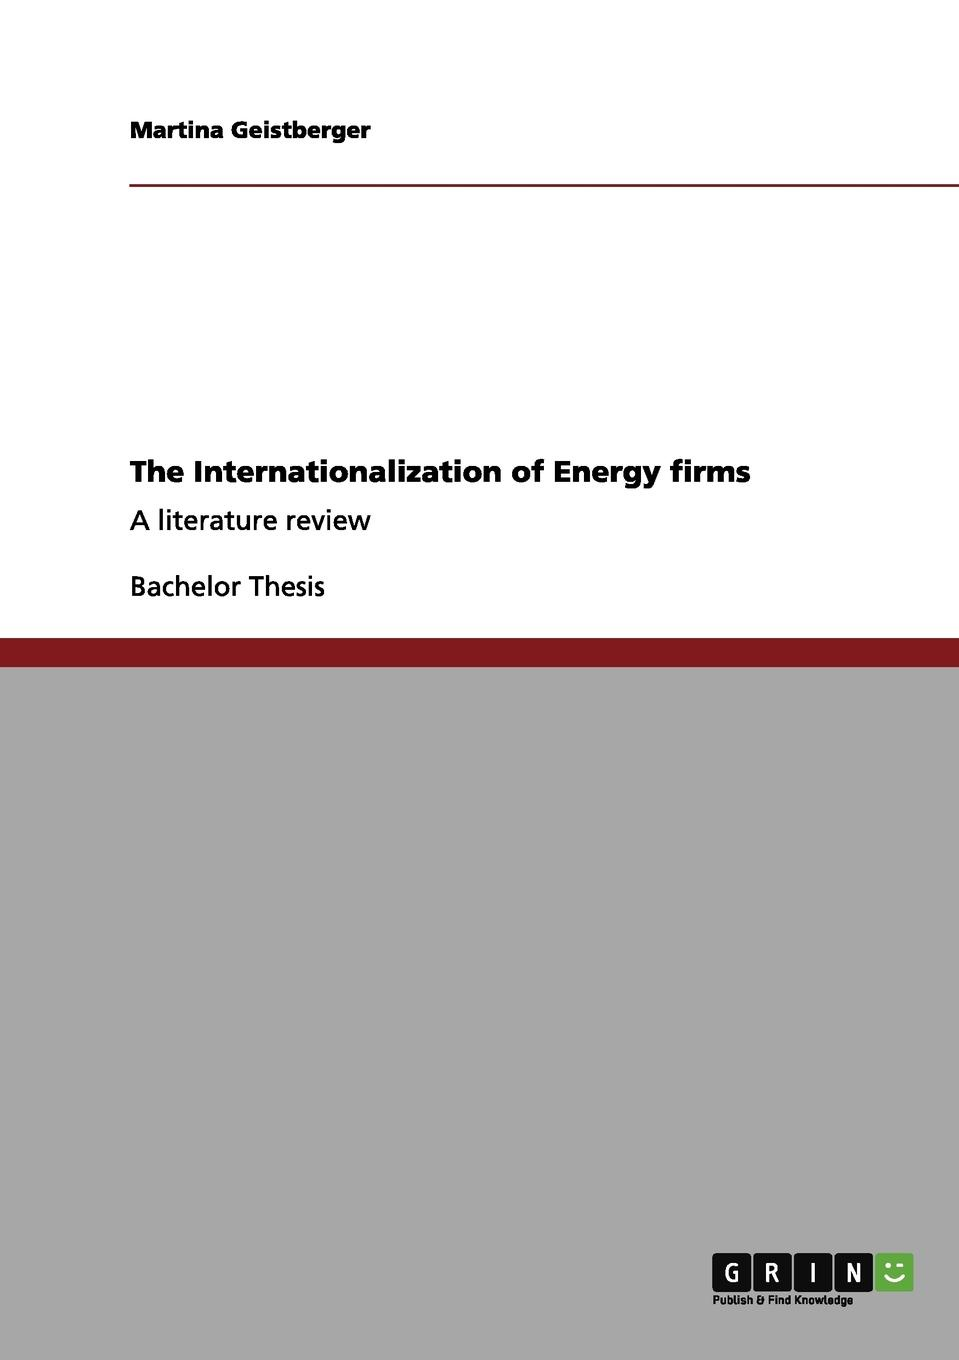 Martina Geistberger The Internationalization of Energy firms maria joao camelo de barros the role of local municipalities in the promotion of the internationalization of firms